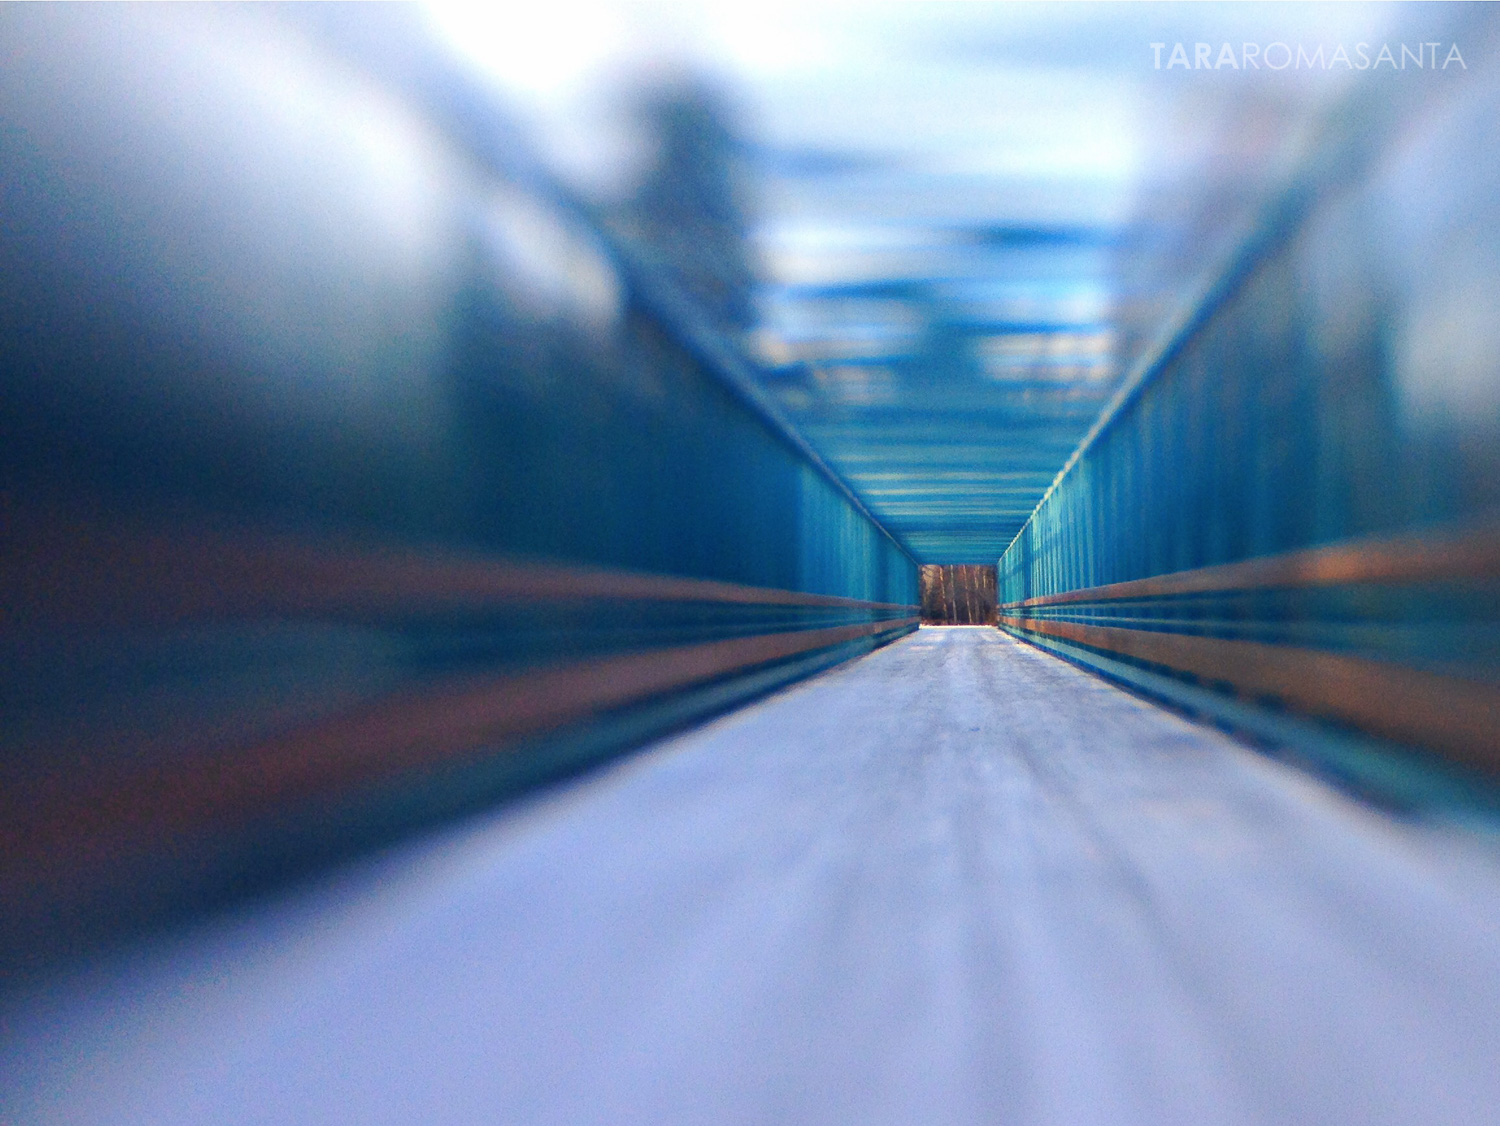 Campbell Creek Bridge in Anchorage, shot with iPhone5 and Lensbaby mobile lens for a Shutter Sisters-Lensbaby collaboration on Instagram.